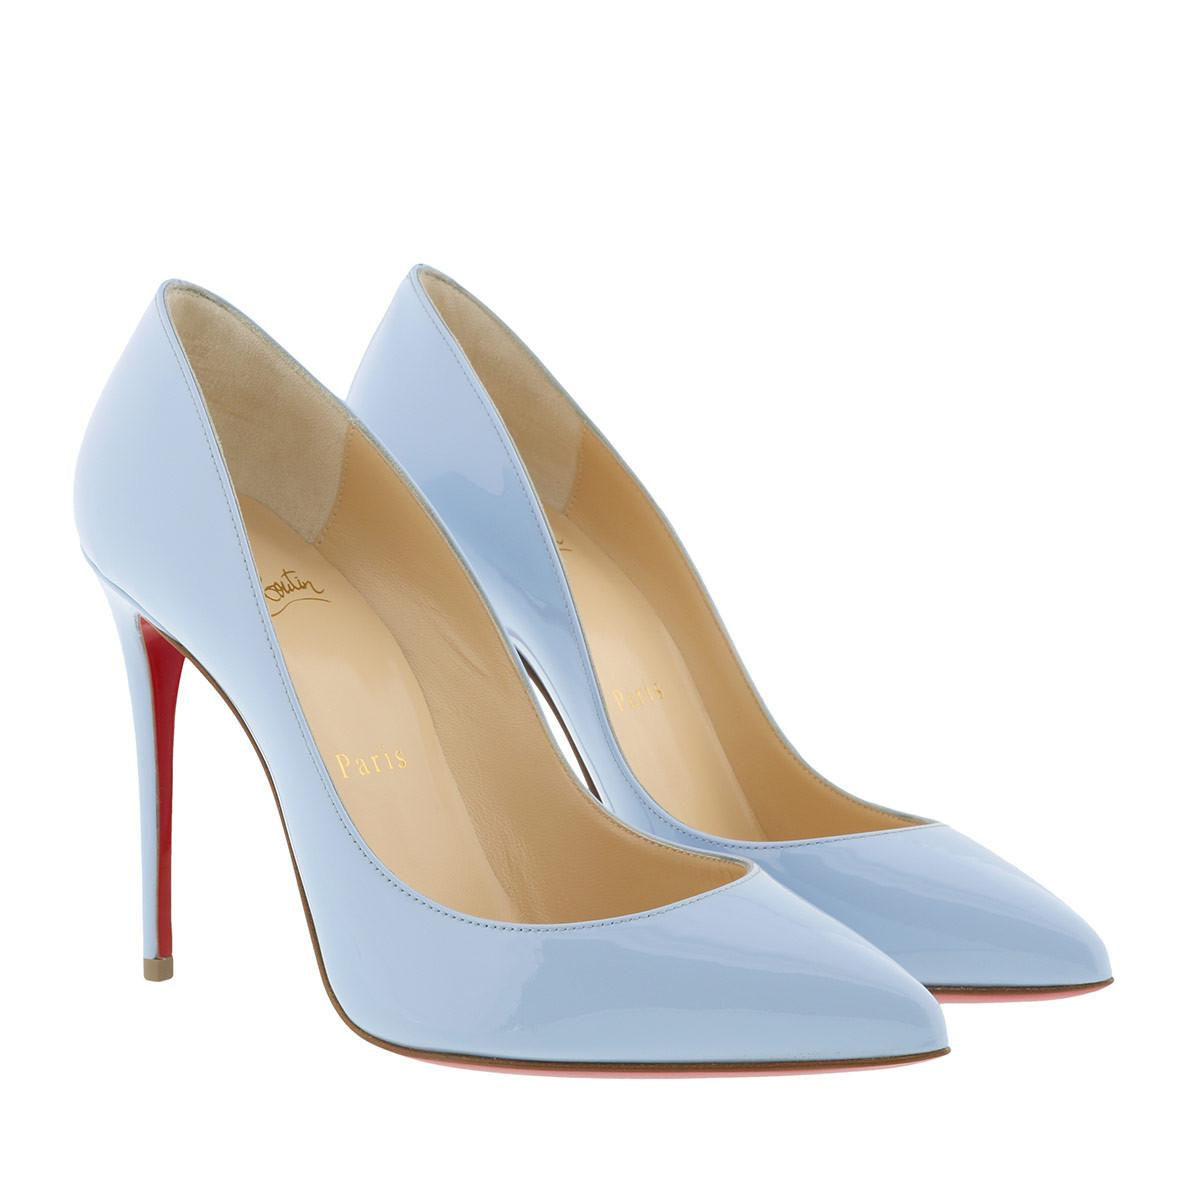 388b27464859 Christian Louboutin Pigalle Follies 100 Patent Pump Sky in Blue - Lyst